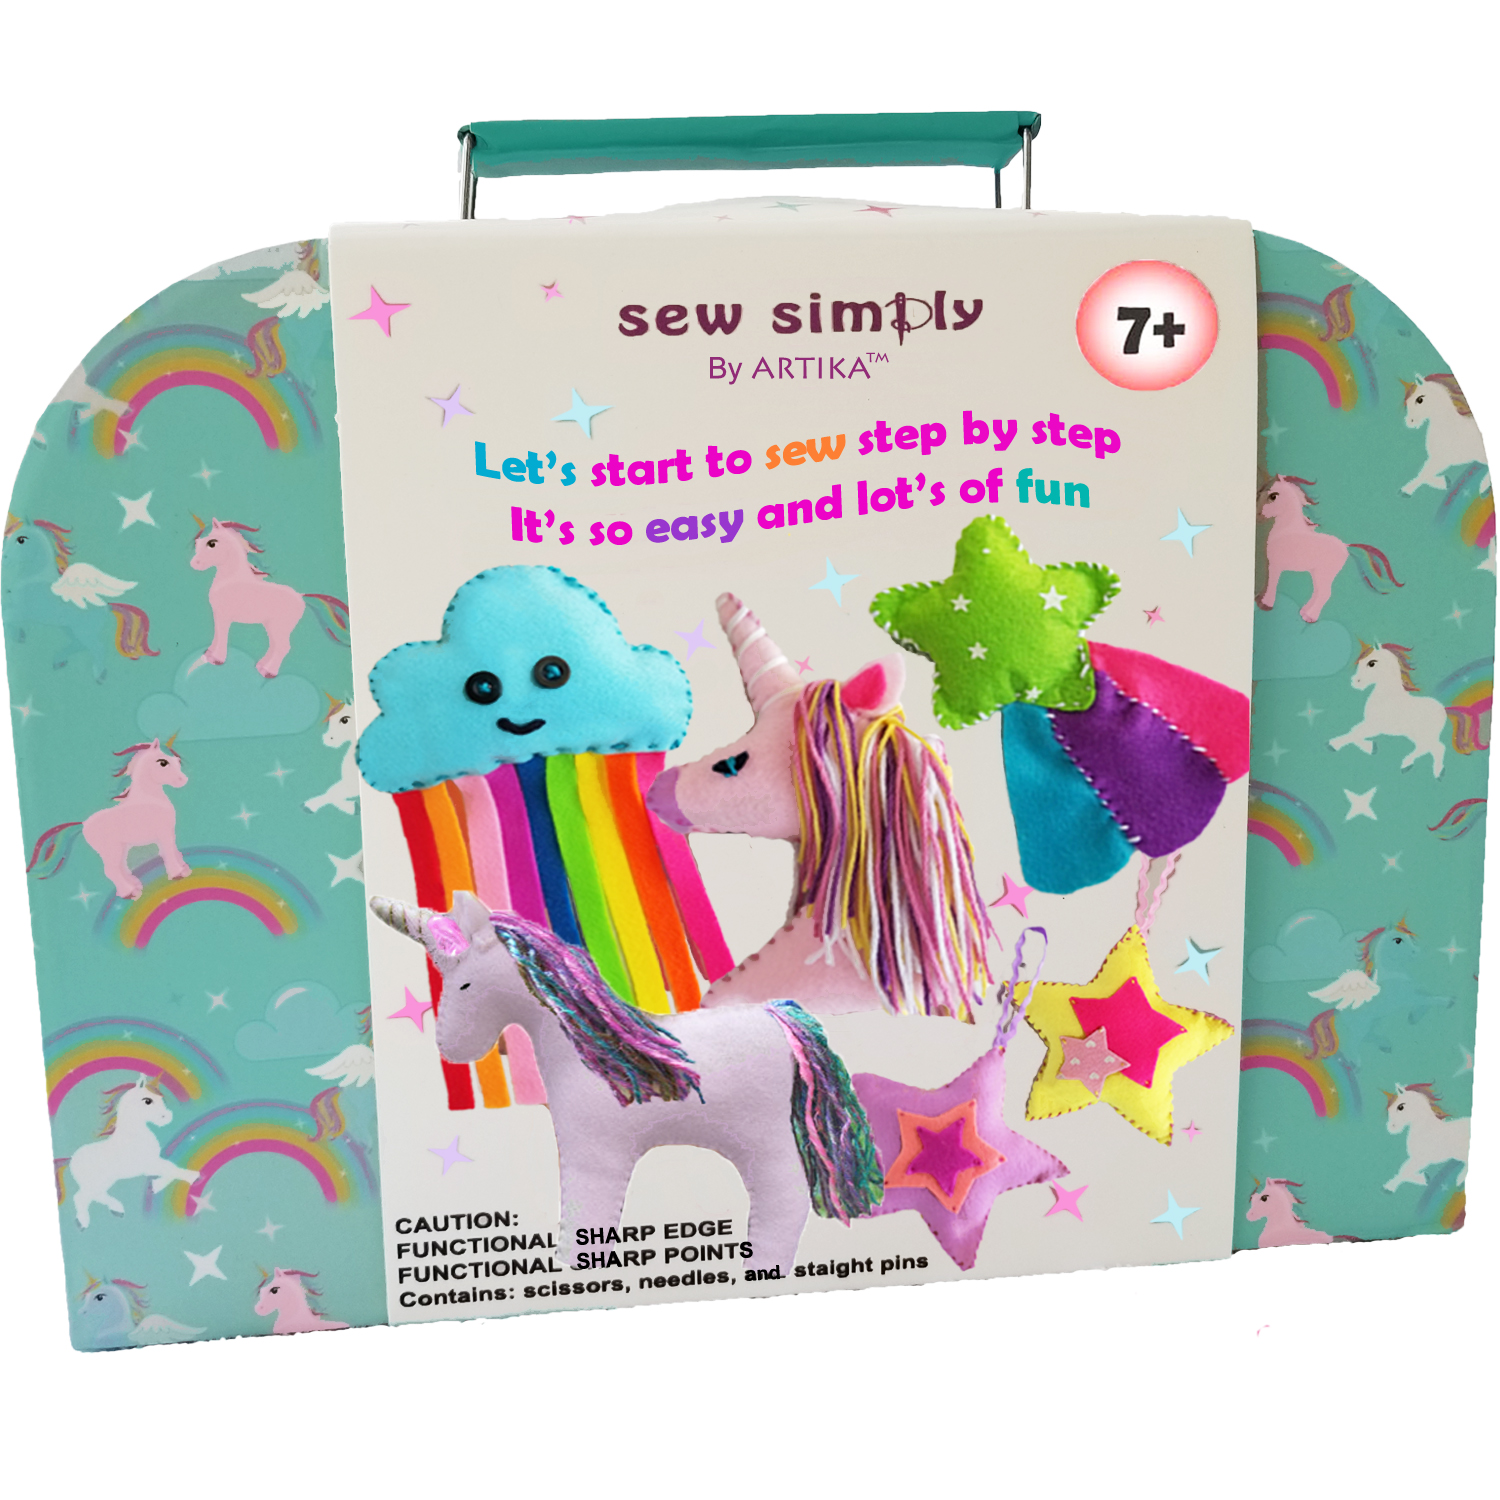 ARTIKA Sew Simply Sewing Kit for Beginners, Kids - Over 110 Quality Kids Sewing Supplies Including Booklet of Cutting Shapes Stencils